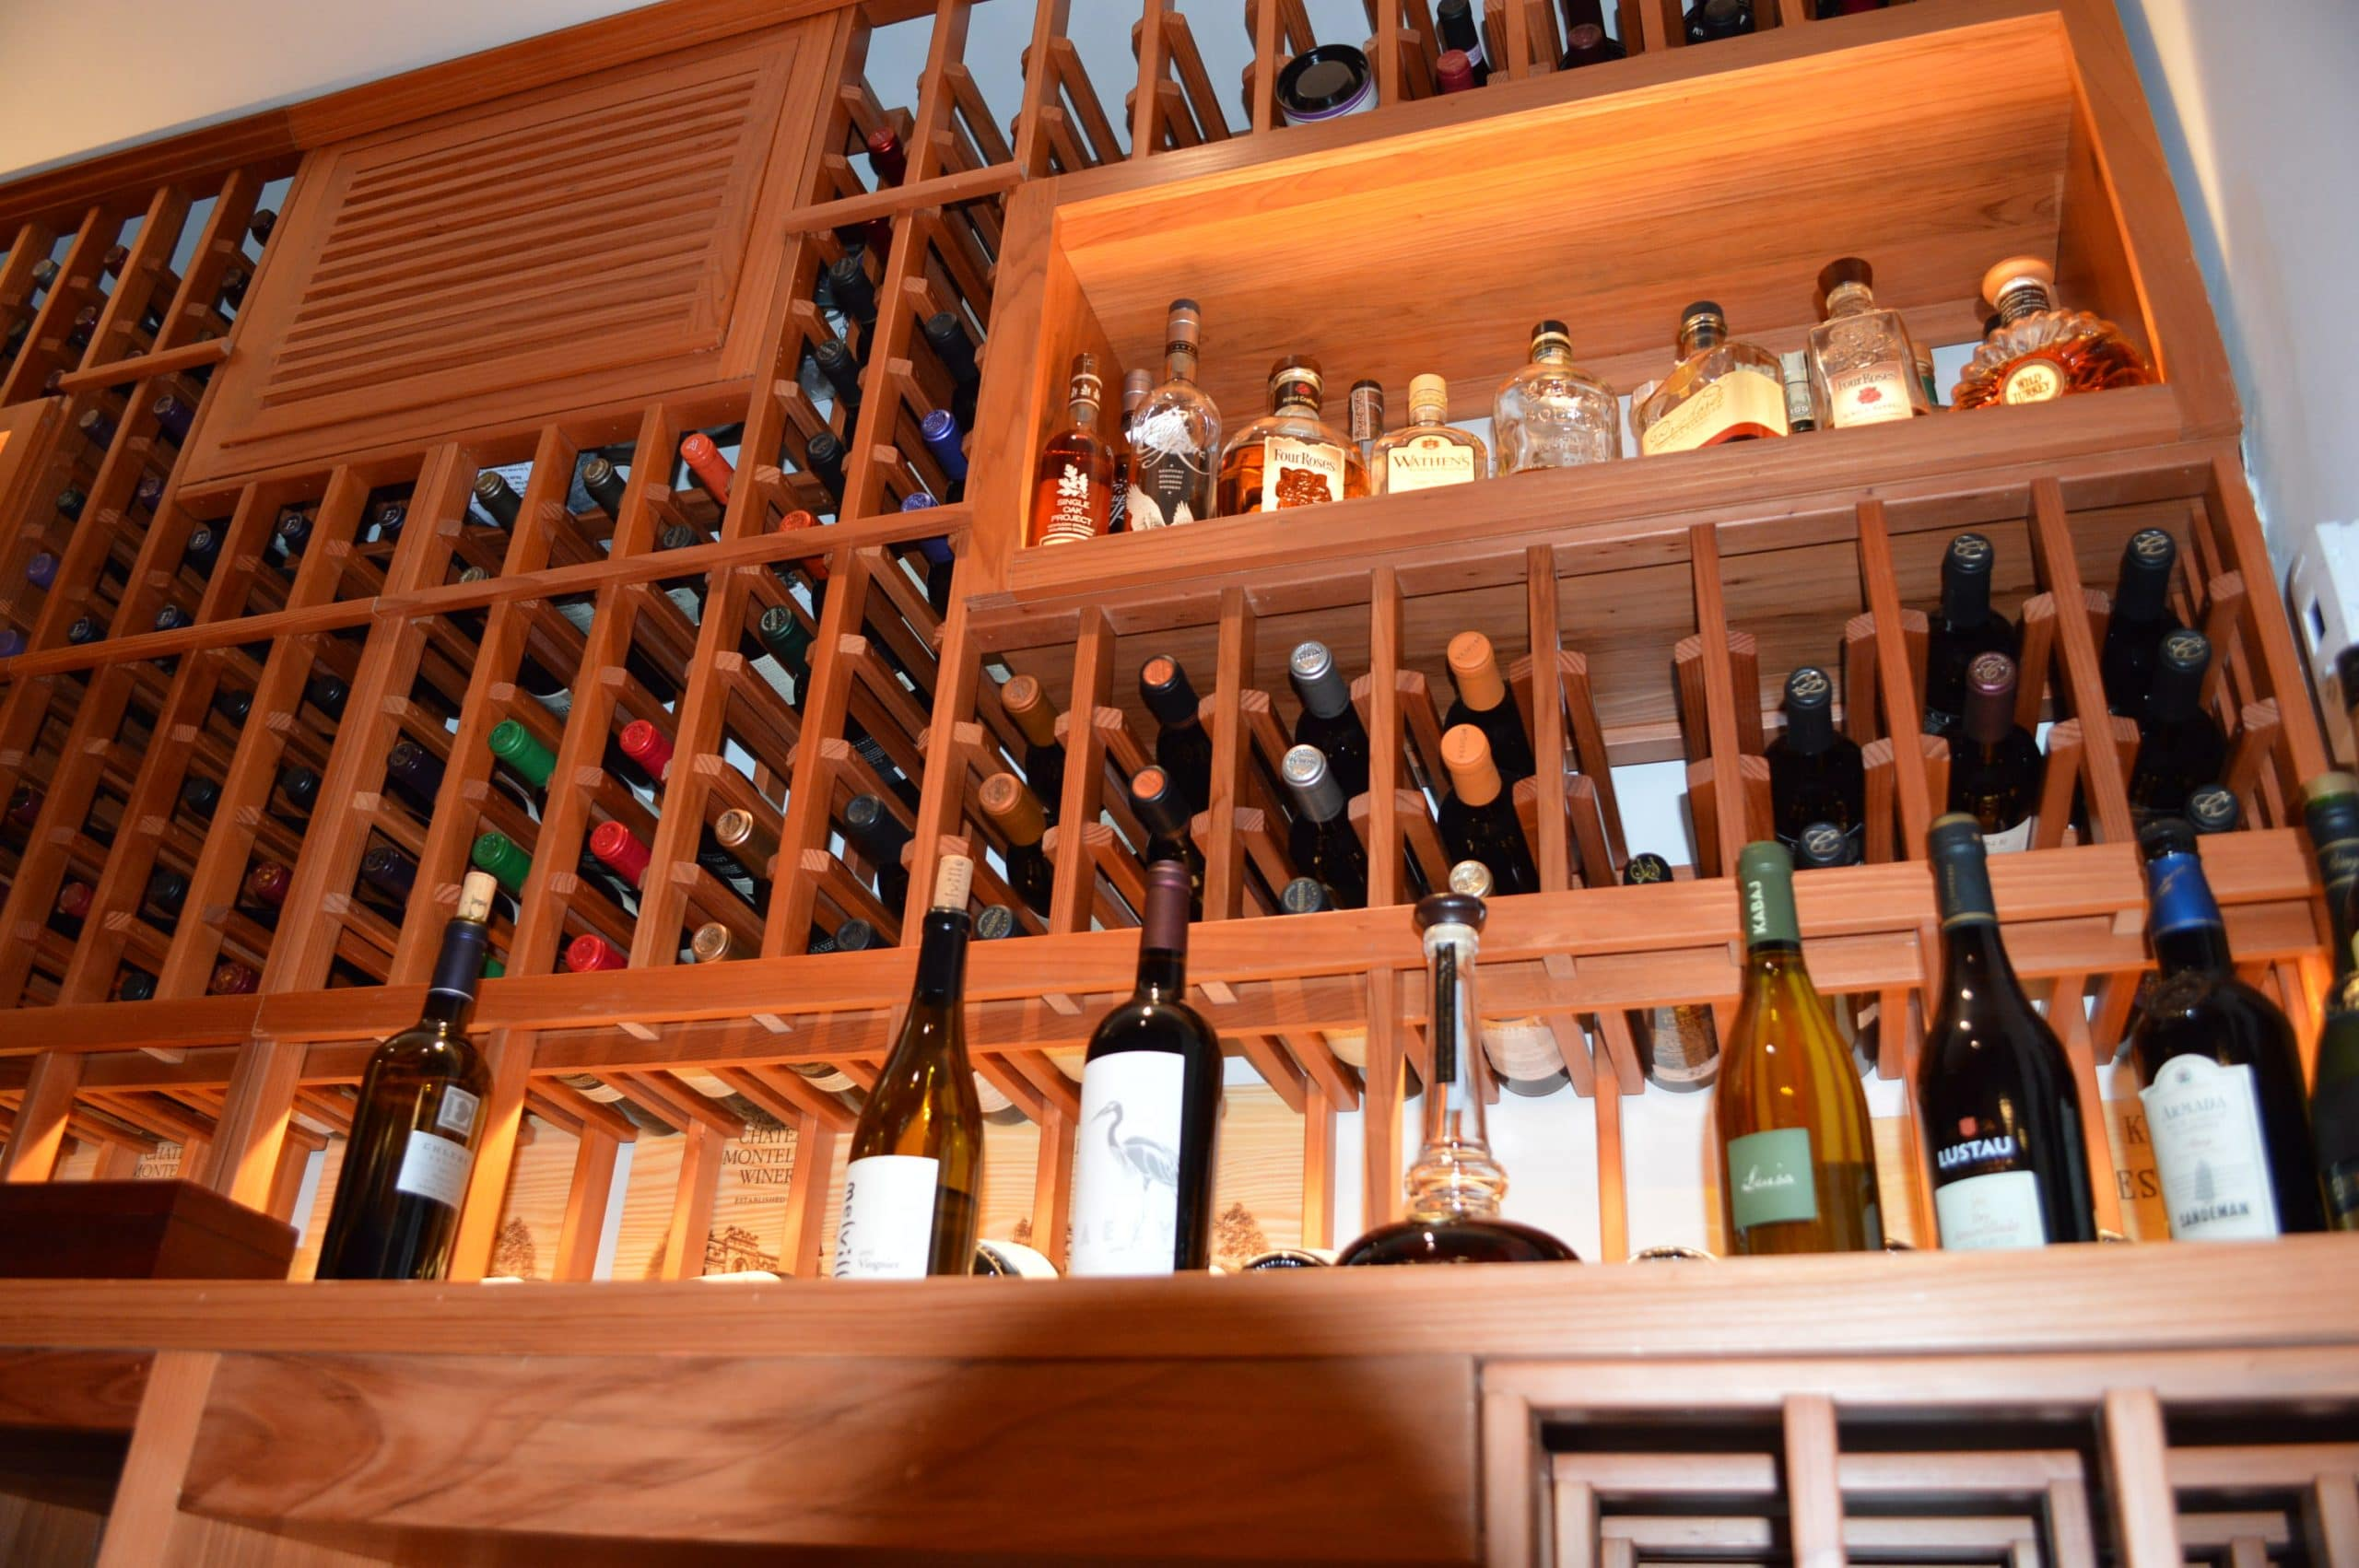 racks stact wine to enthralling image restaurant with storage display trends genial ah rack wall manly bar